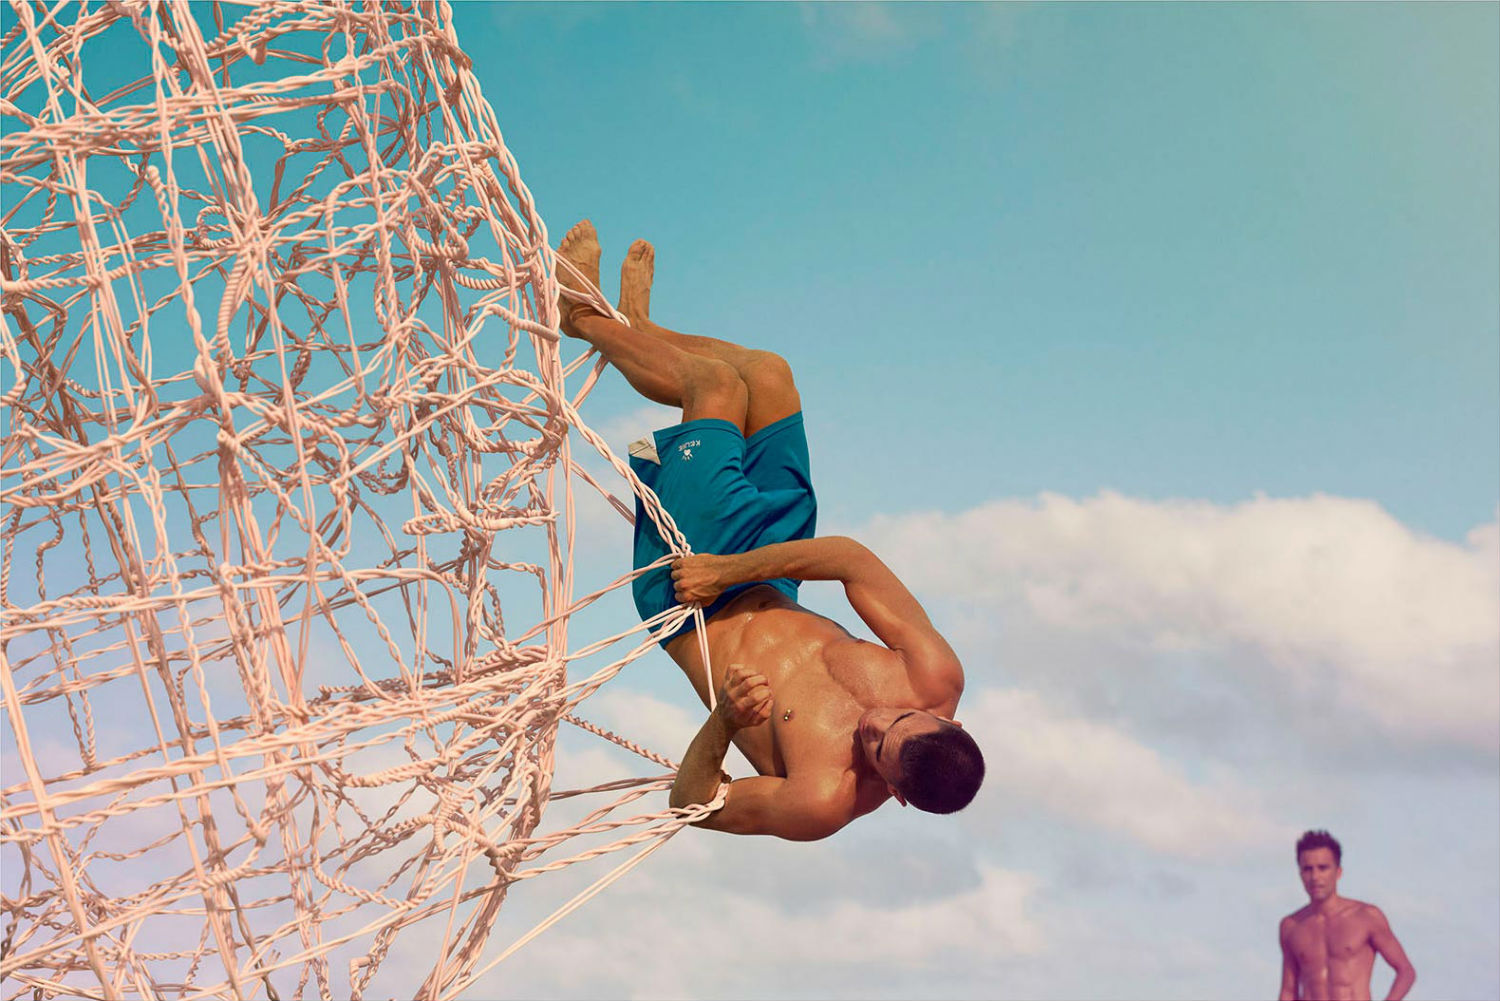 dimitri daniloff meshalogy photography colour beach acrobatics